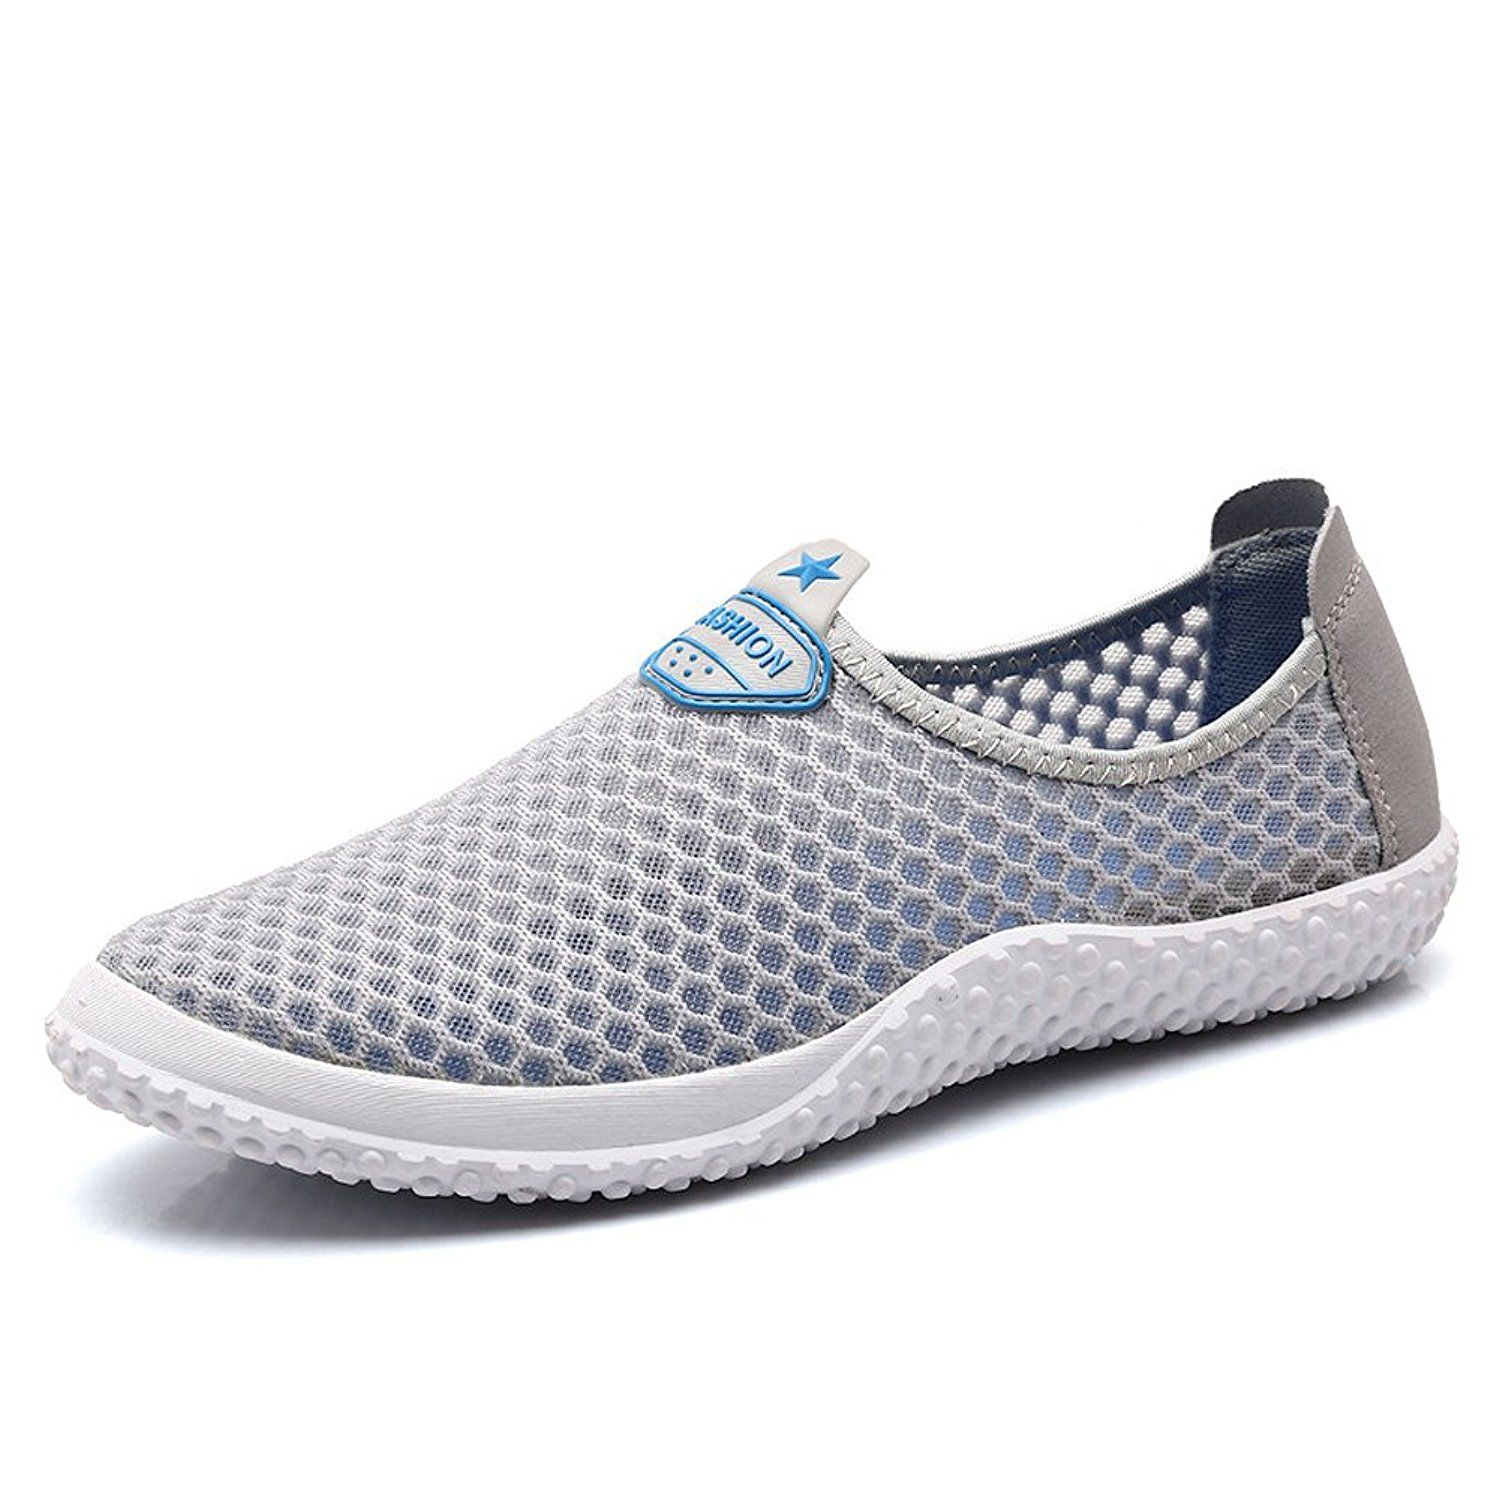 Man and Women Mesh Slip On Water Shoes Breathable Quick Drying Aqua Shoes6 colours